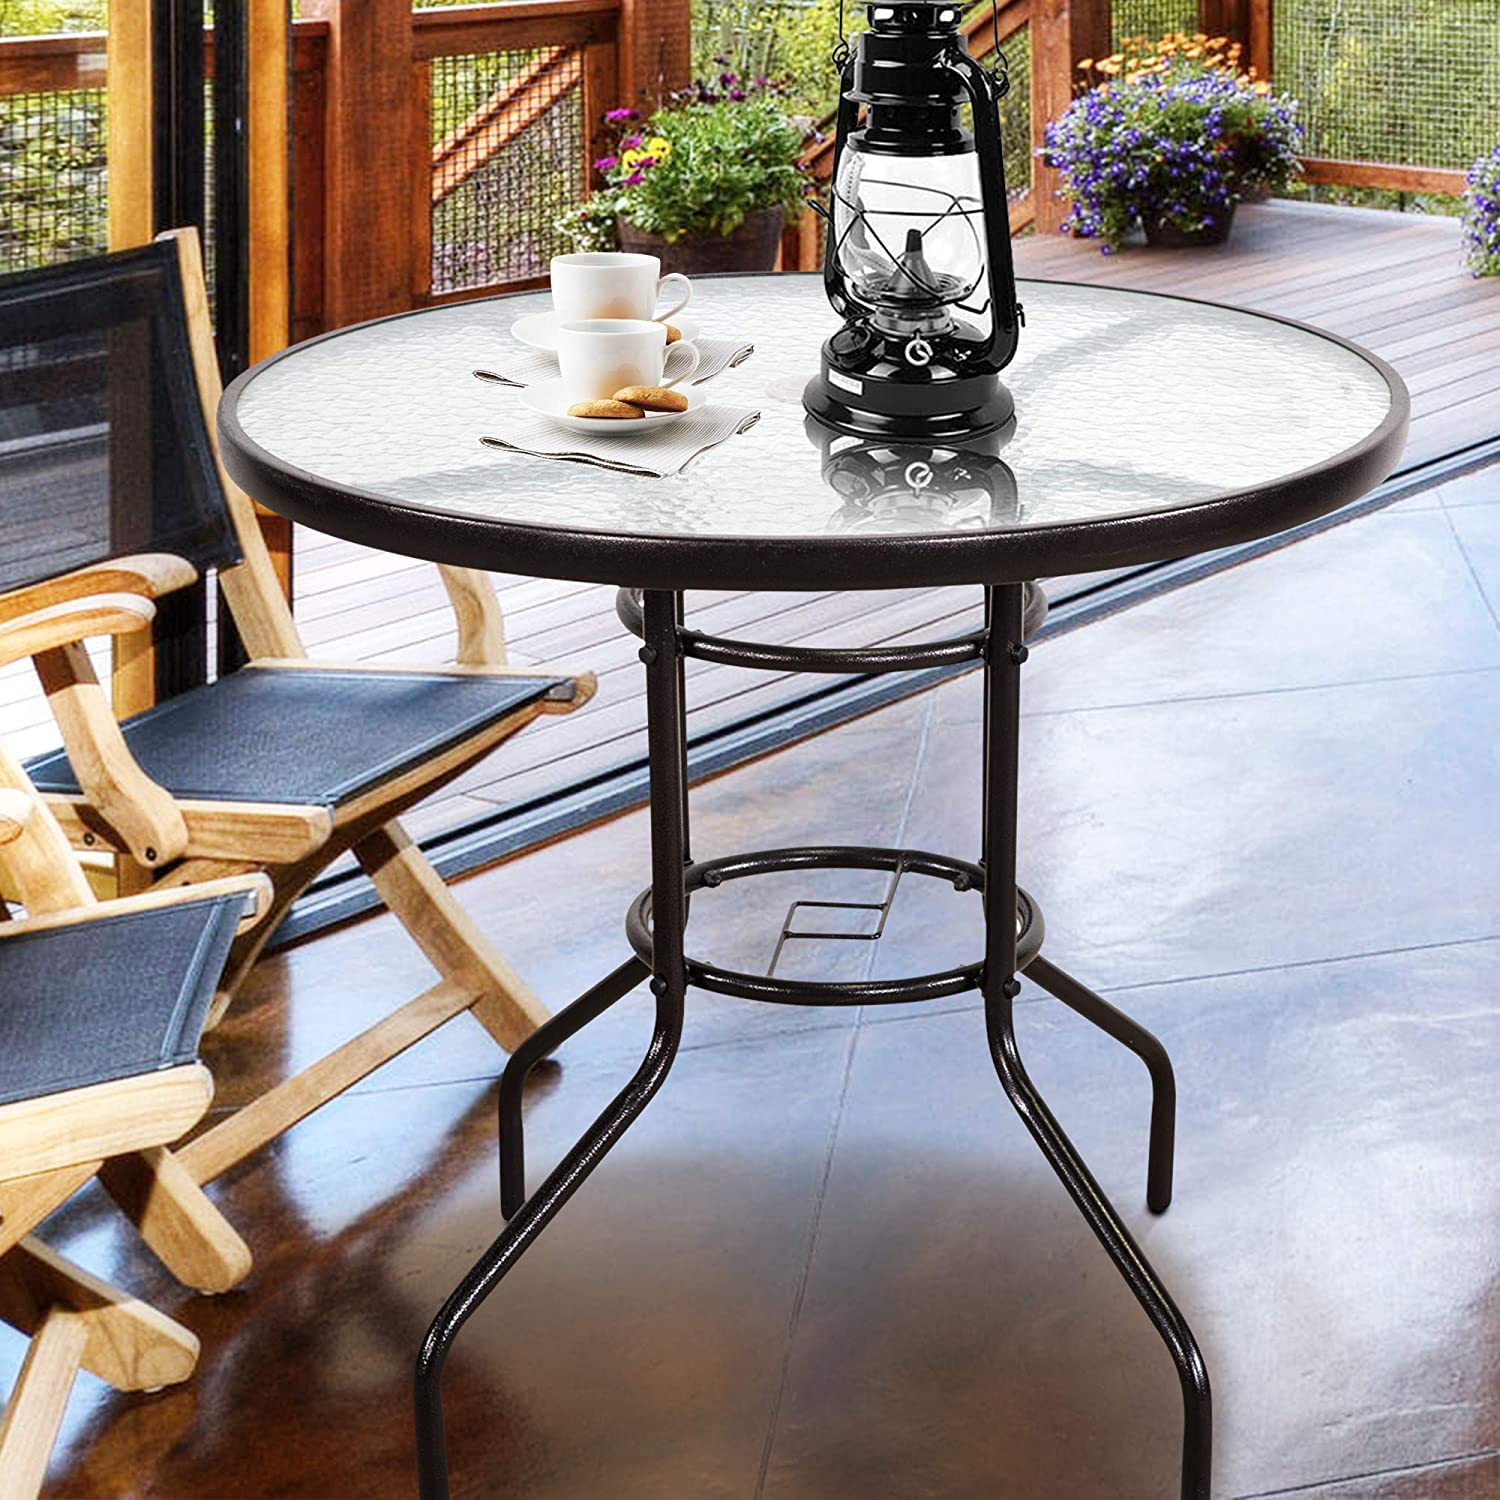 Homevibes 32 Outdoor Patio Dining Table Tempered Glass Top Bistro Table Top Umbrella Stand Round Deck Furniture Garden Table Metal Frame Dark Chocolate Garden Outdoor